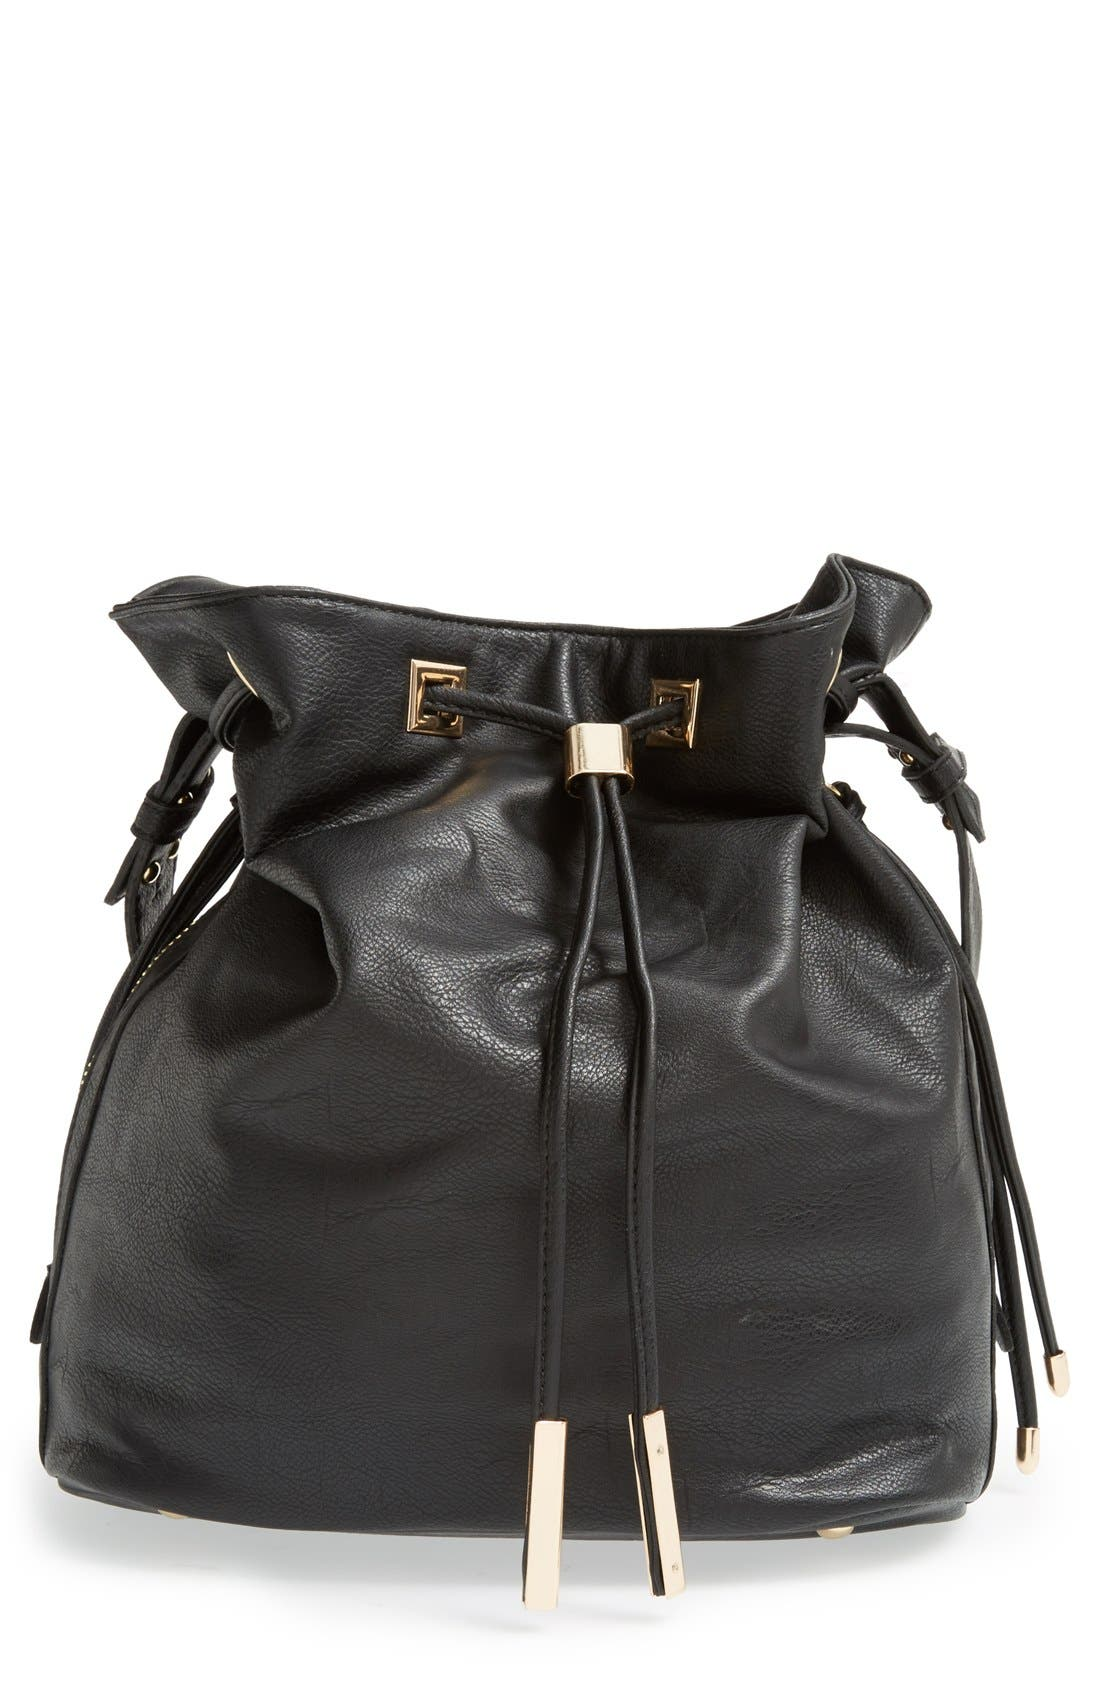 Alternate Image 1 Selected - Sole Society 'Logan' Faux Leather Bucket Bag